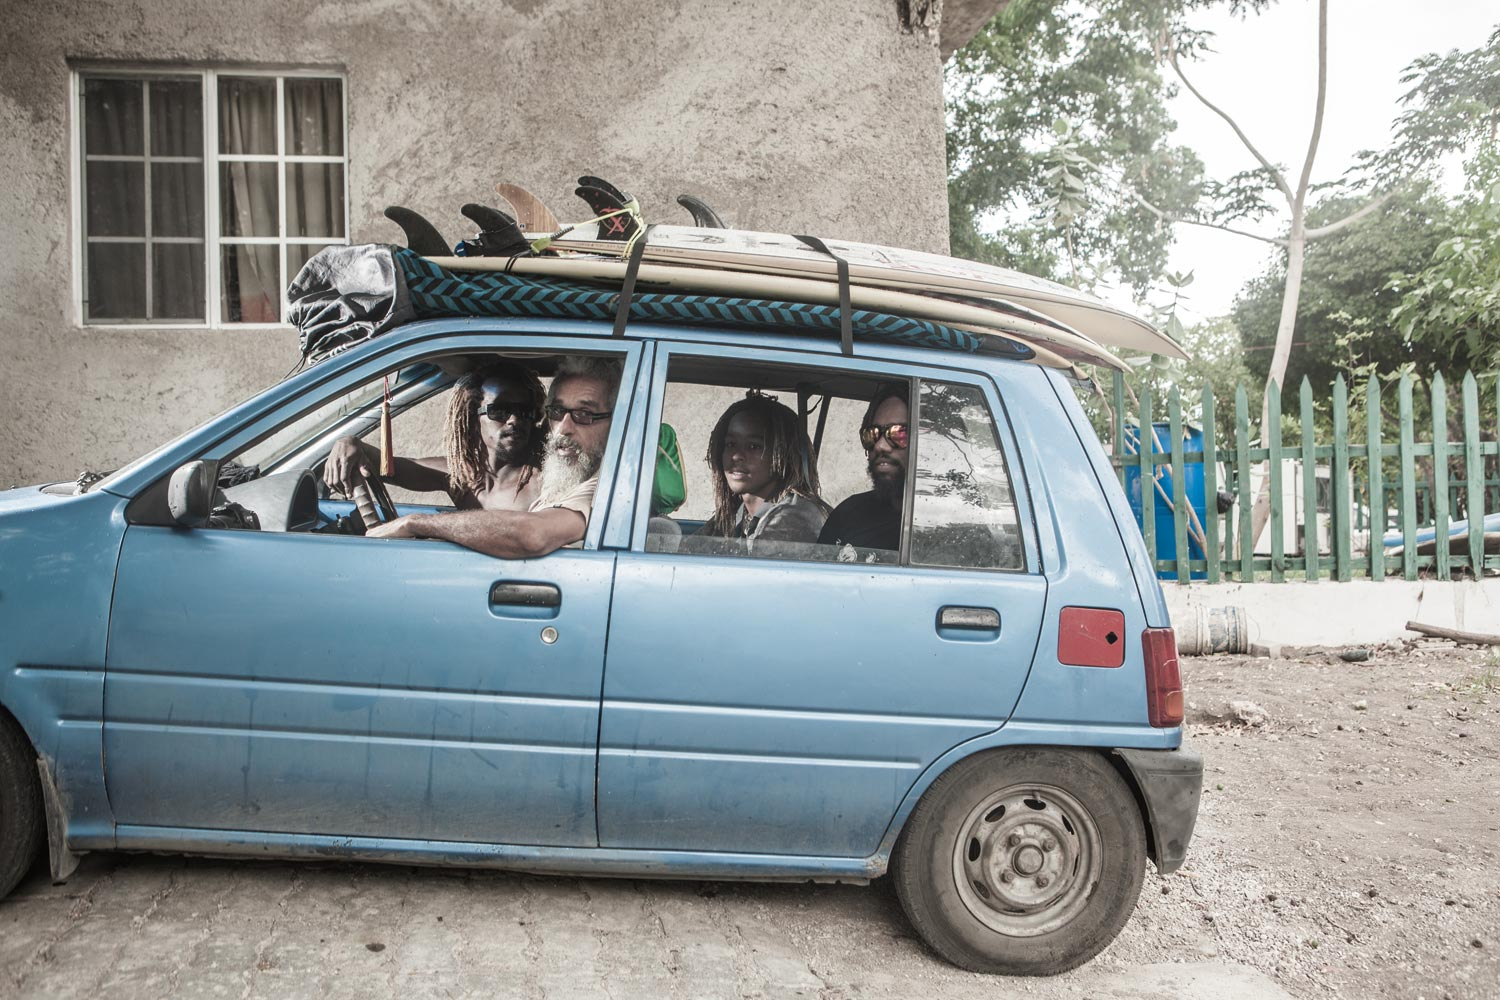 The Wilmots head out to catch some waves: Icah behind the wheel, father Billy in the passenger's seat, and sons Ivah and Ishack behind. Photography by Marlon James